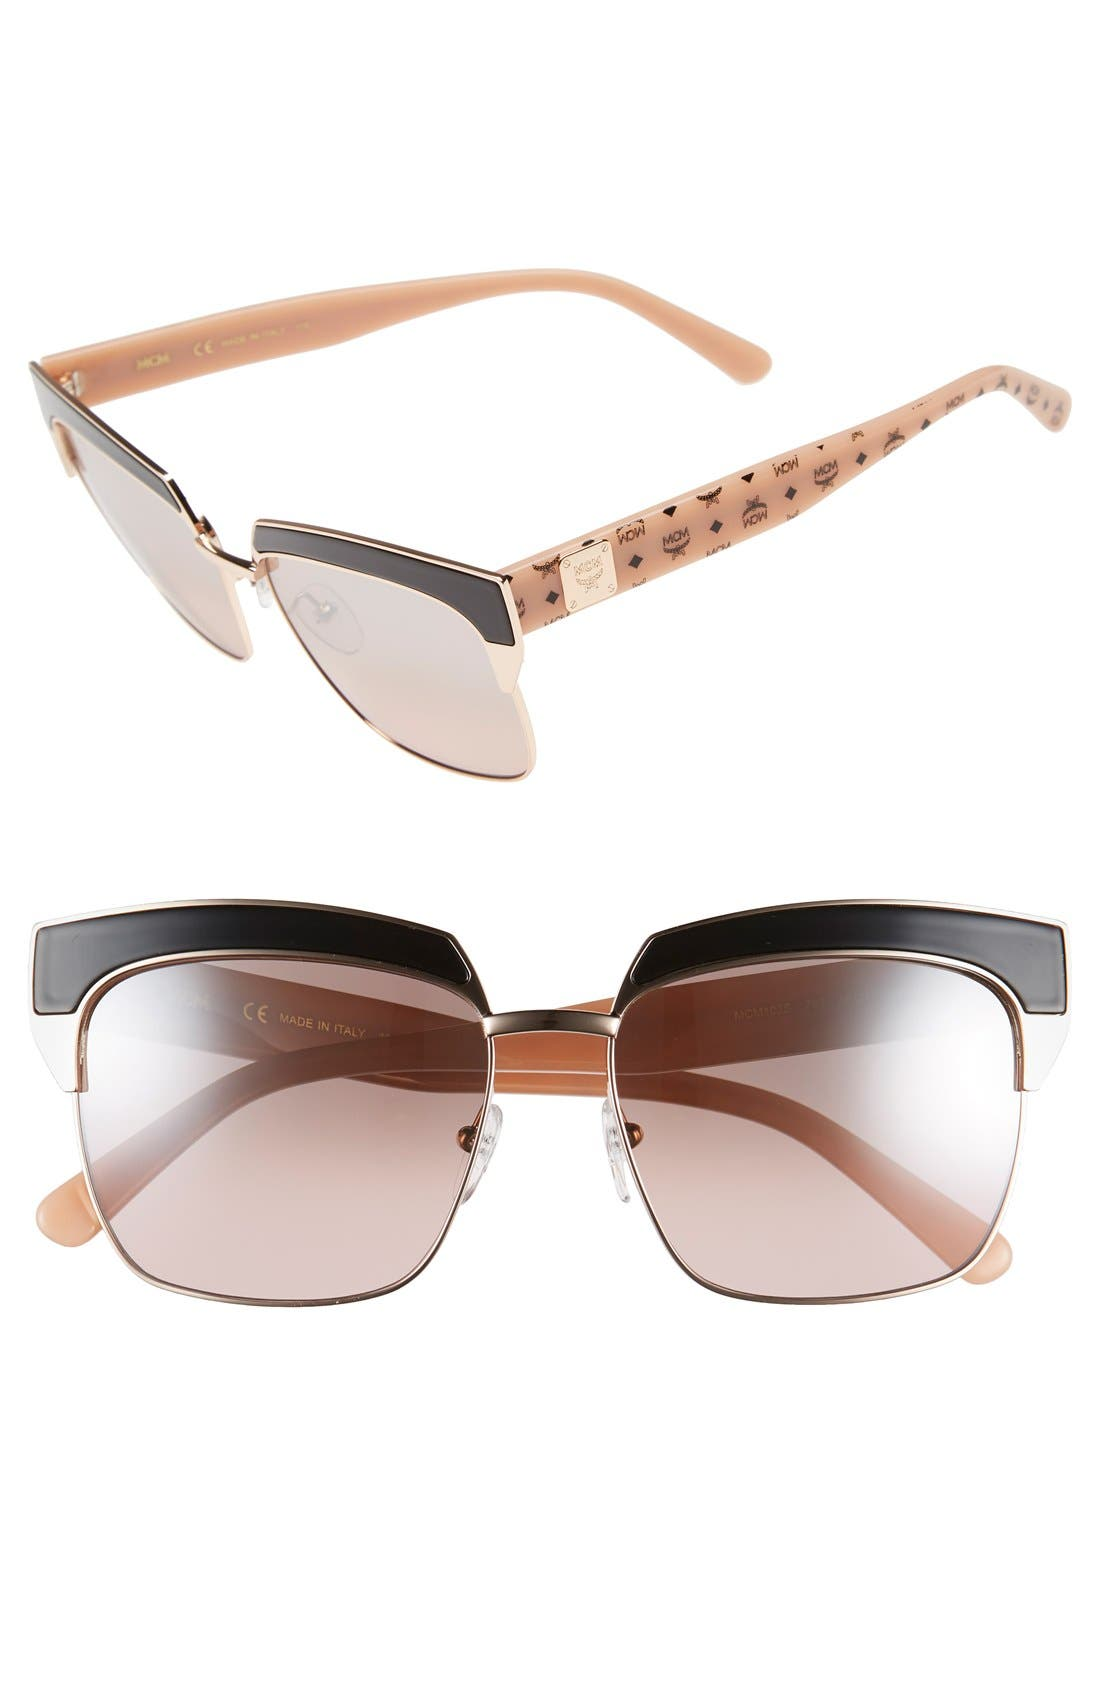 'Visetos' 56mm Retro Sunglasses,                         Main,                         color, Shiny Rose Gold/ Nude Visetos